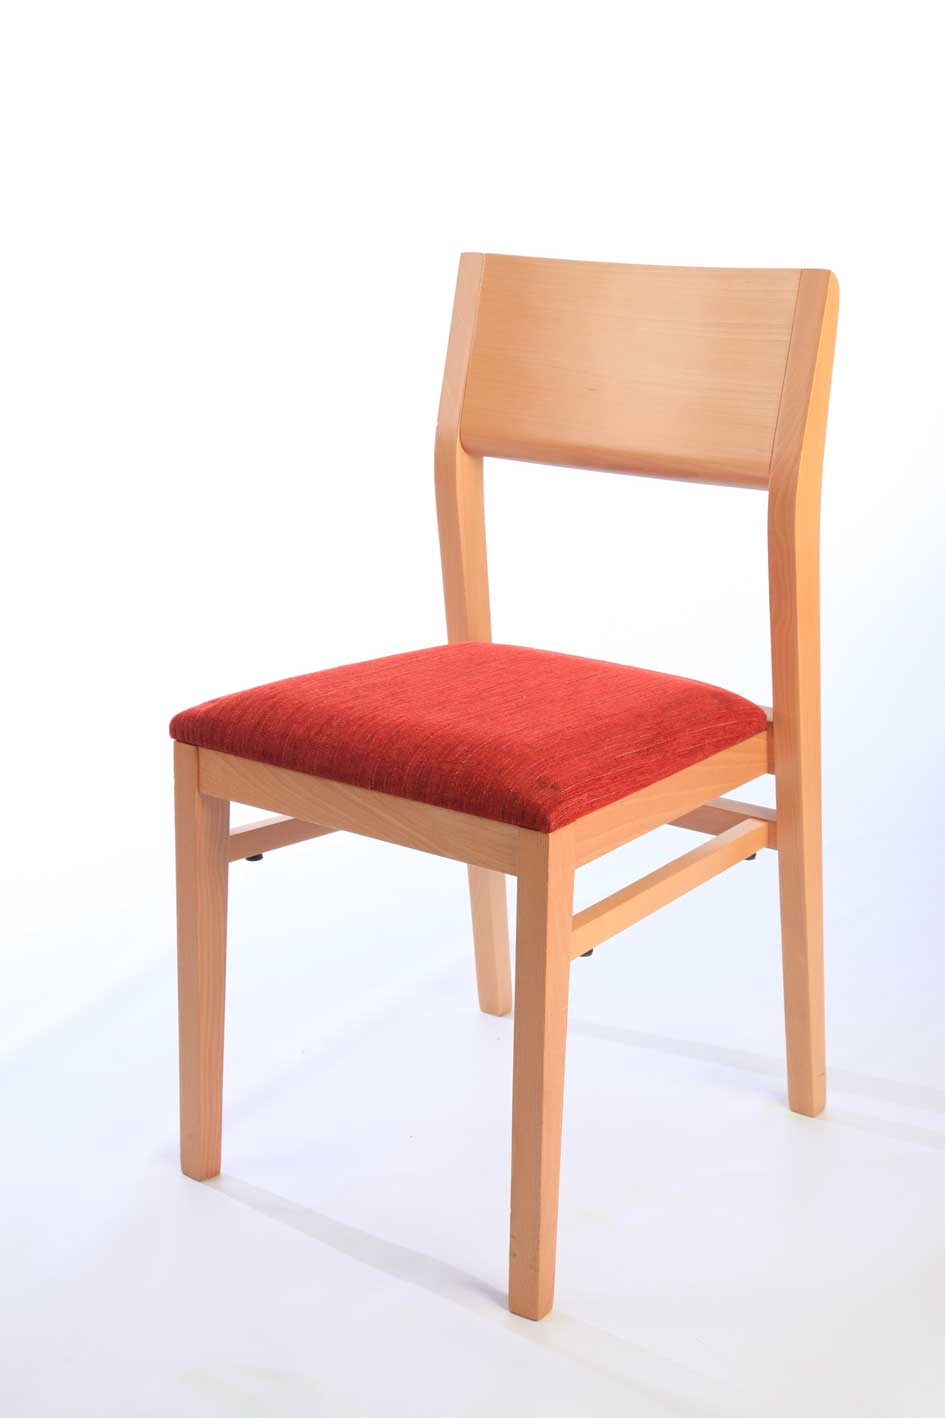 Wooden frame stackable chair with red upholstered seat